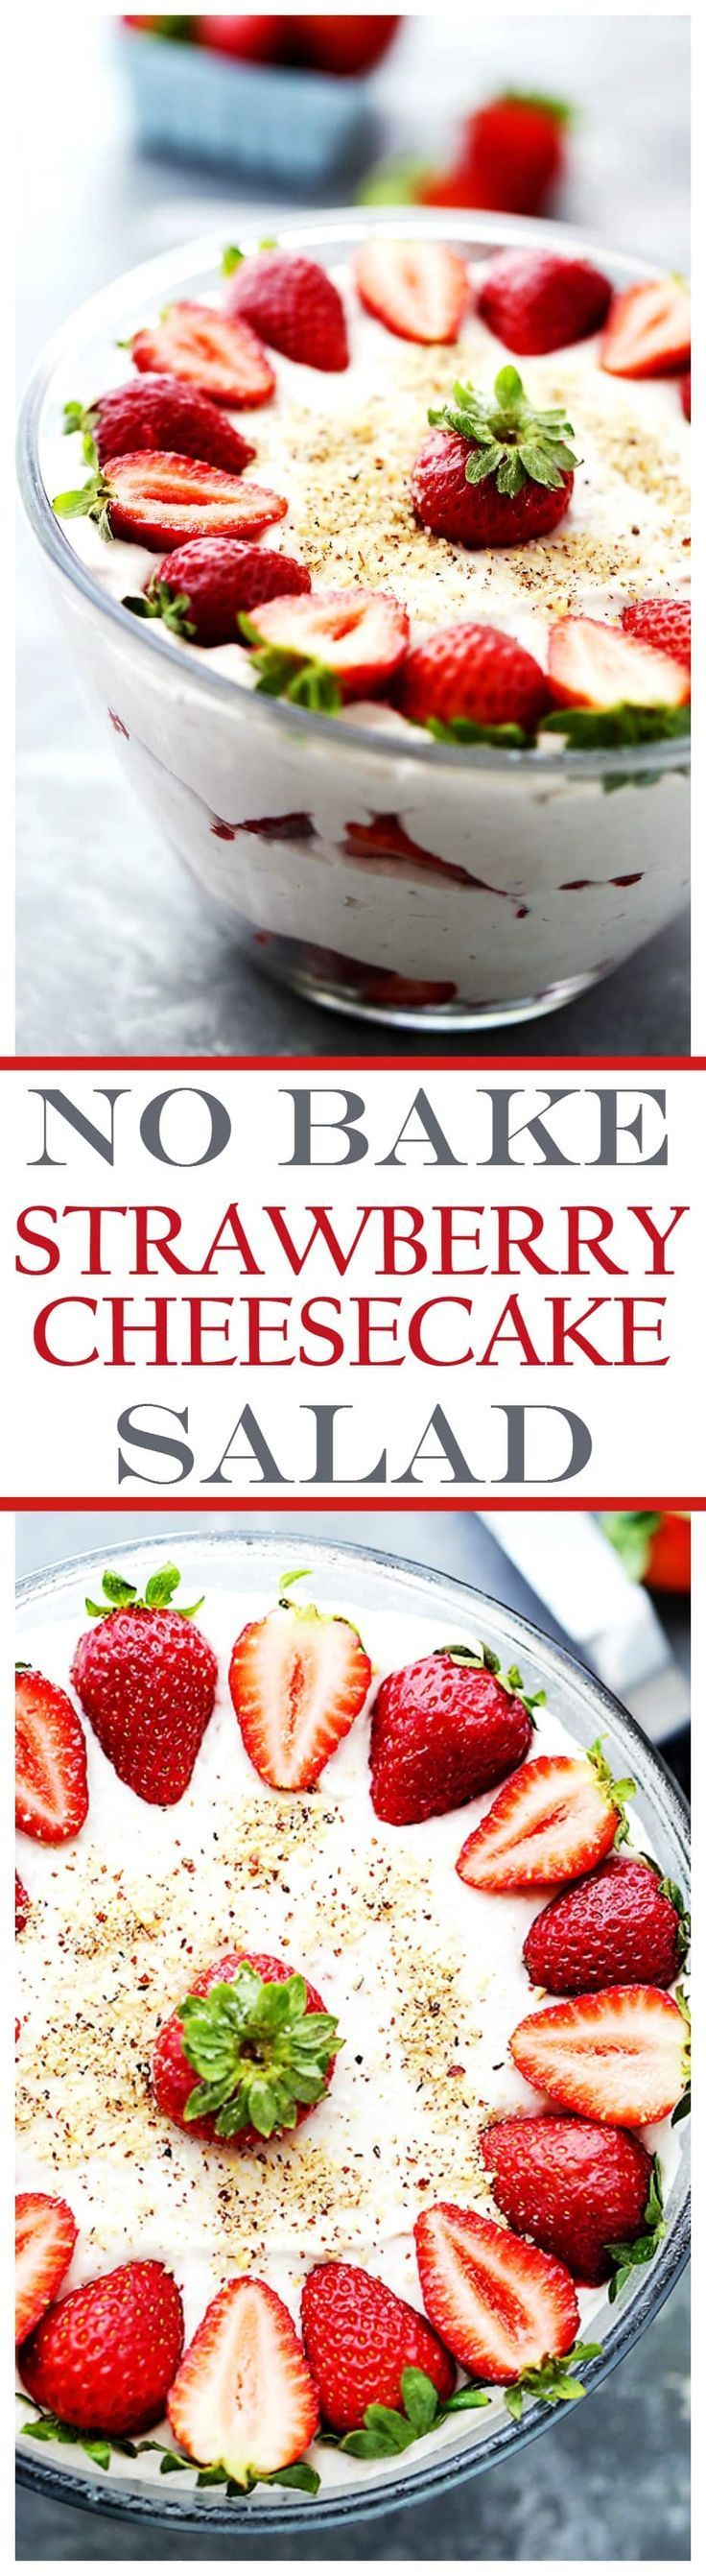 No-Bake Strawberry Cheesecake Salad - Delicious, creamy, light no-bake dessert that's perfect for your Summer parties! No oven needed and everyone always asks for more!